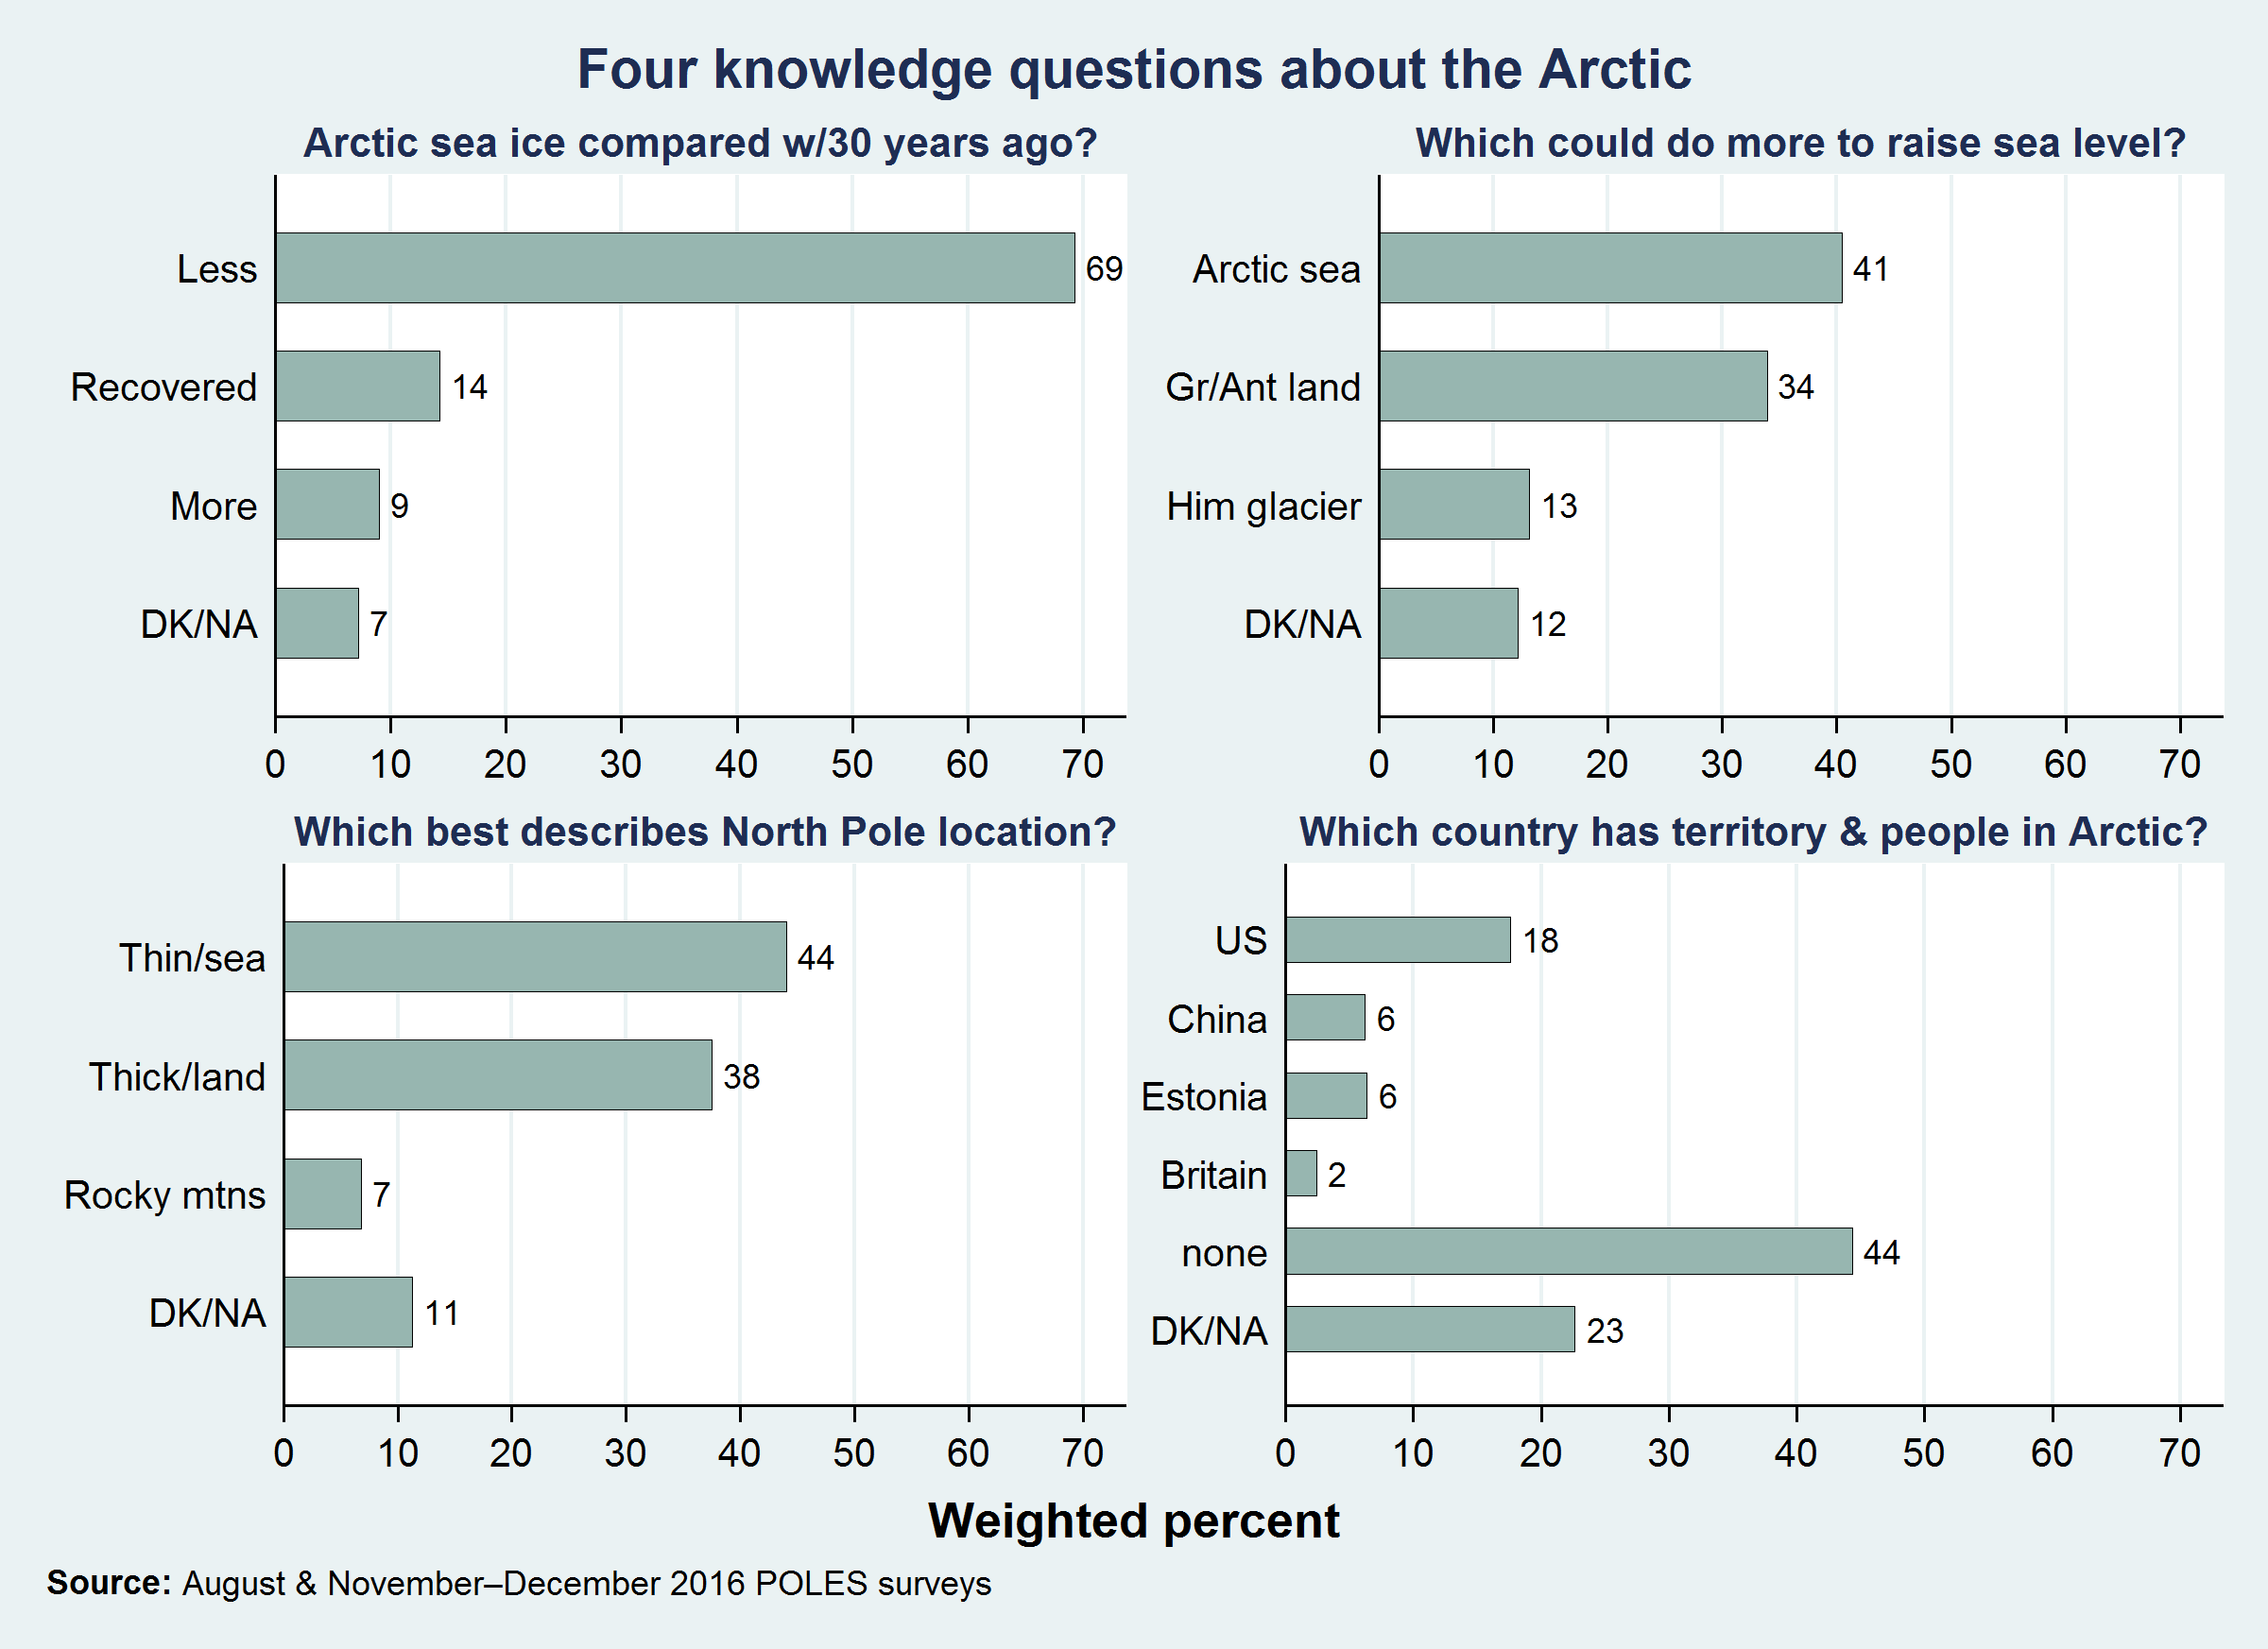 Figure 1. 2016 results from POLES surveys: responses to four basic knowledge questions about the Arctic. Image courtesy of L. Hamilton.